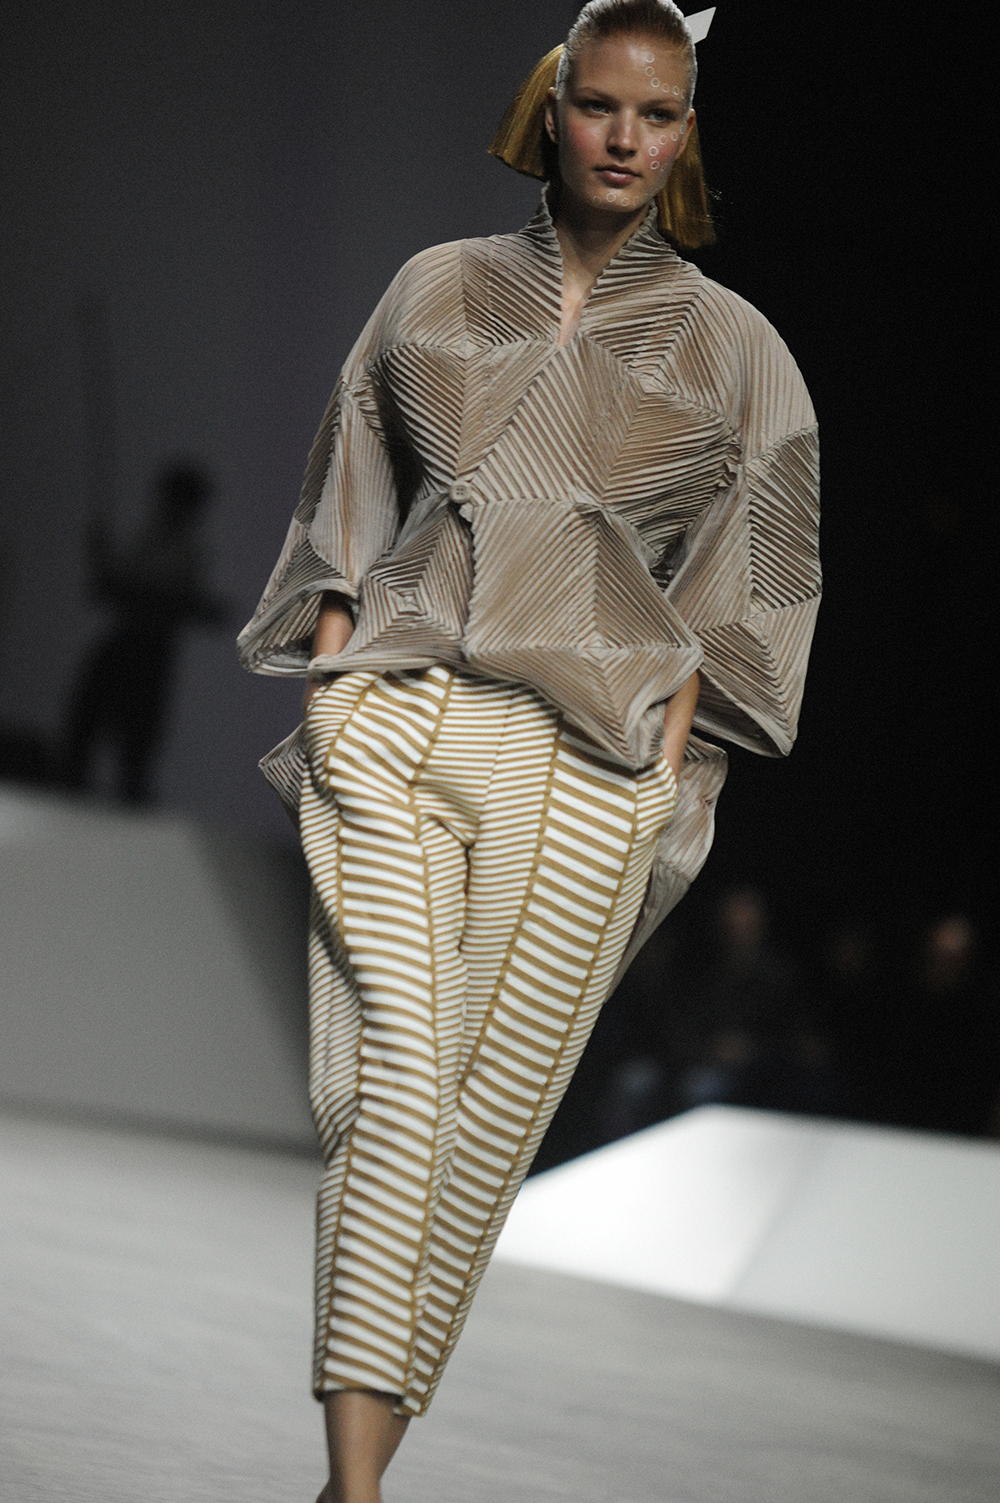 Clothing By Baking It In An Oven By Issey Miyake: On The Runway At Issey Miyake SS17 Paris